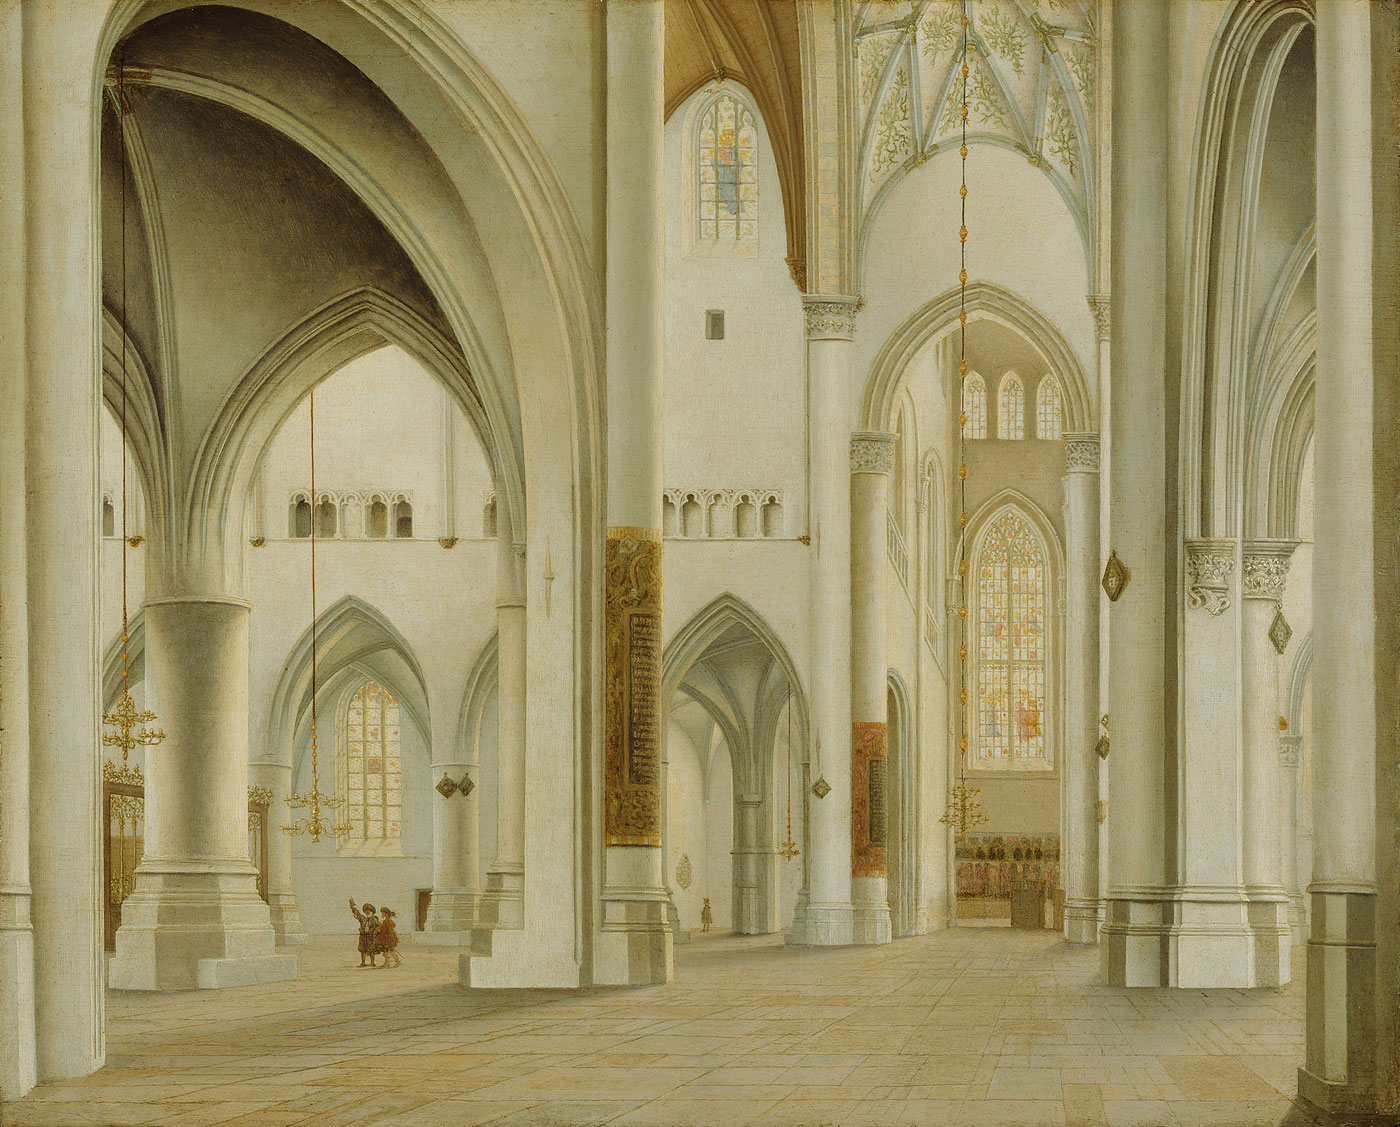 Pieter Jansz. Saenredam (Dutch 1597 - 1665) The Interior of St. Bavo Haarlem 1628 Oil on panel